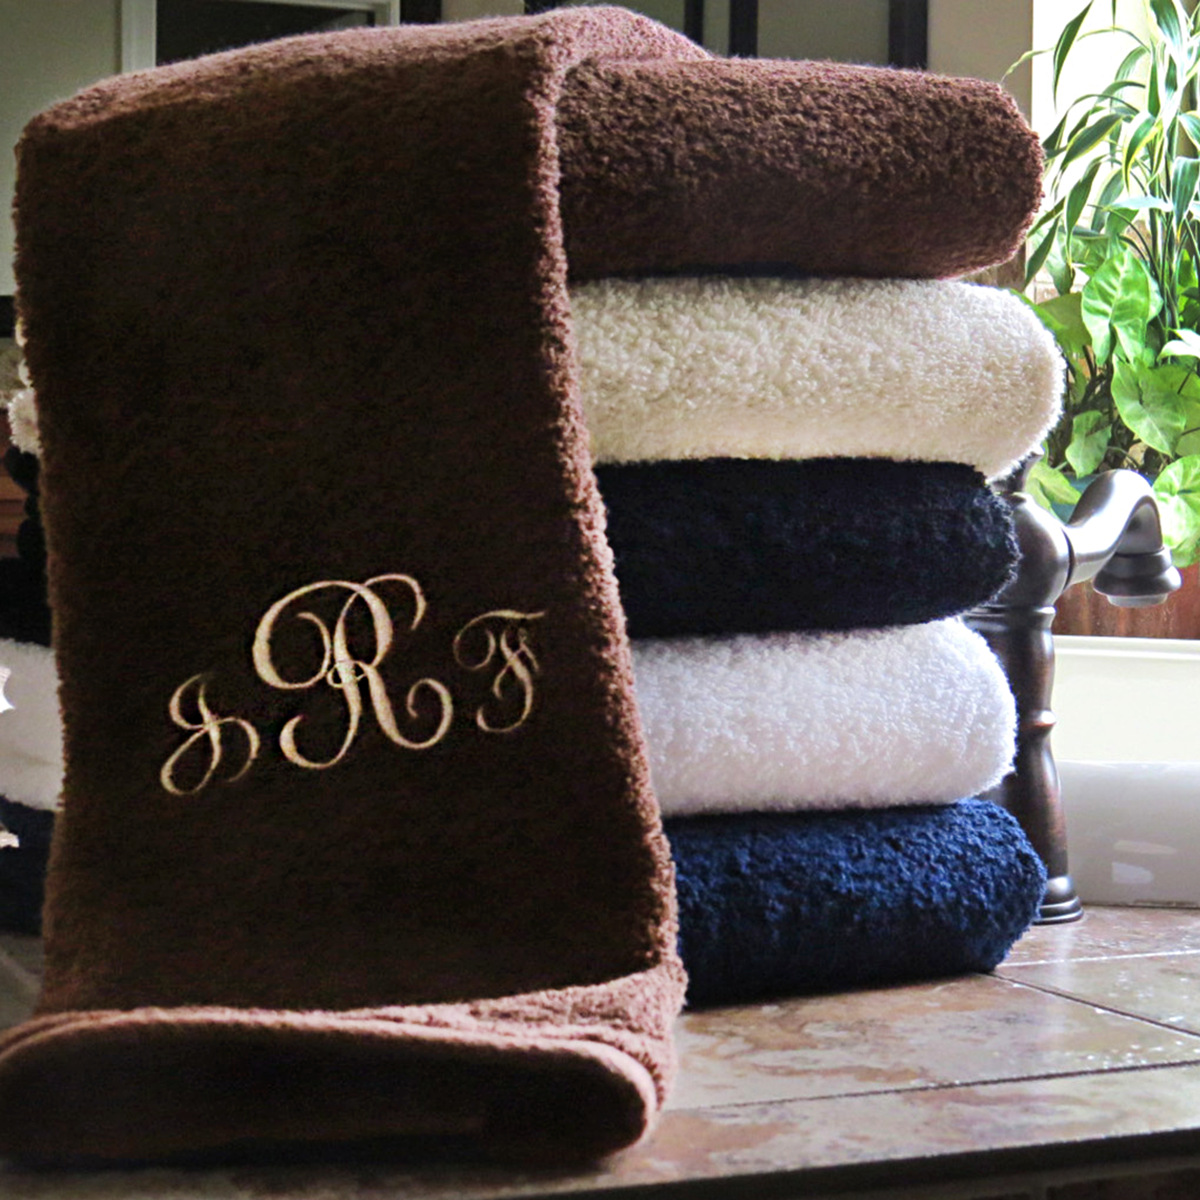 Airstream Towels